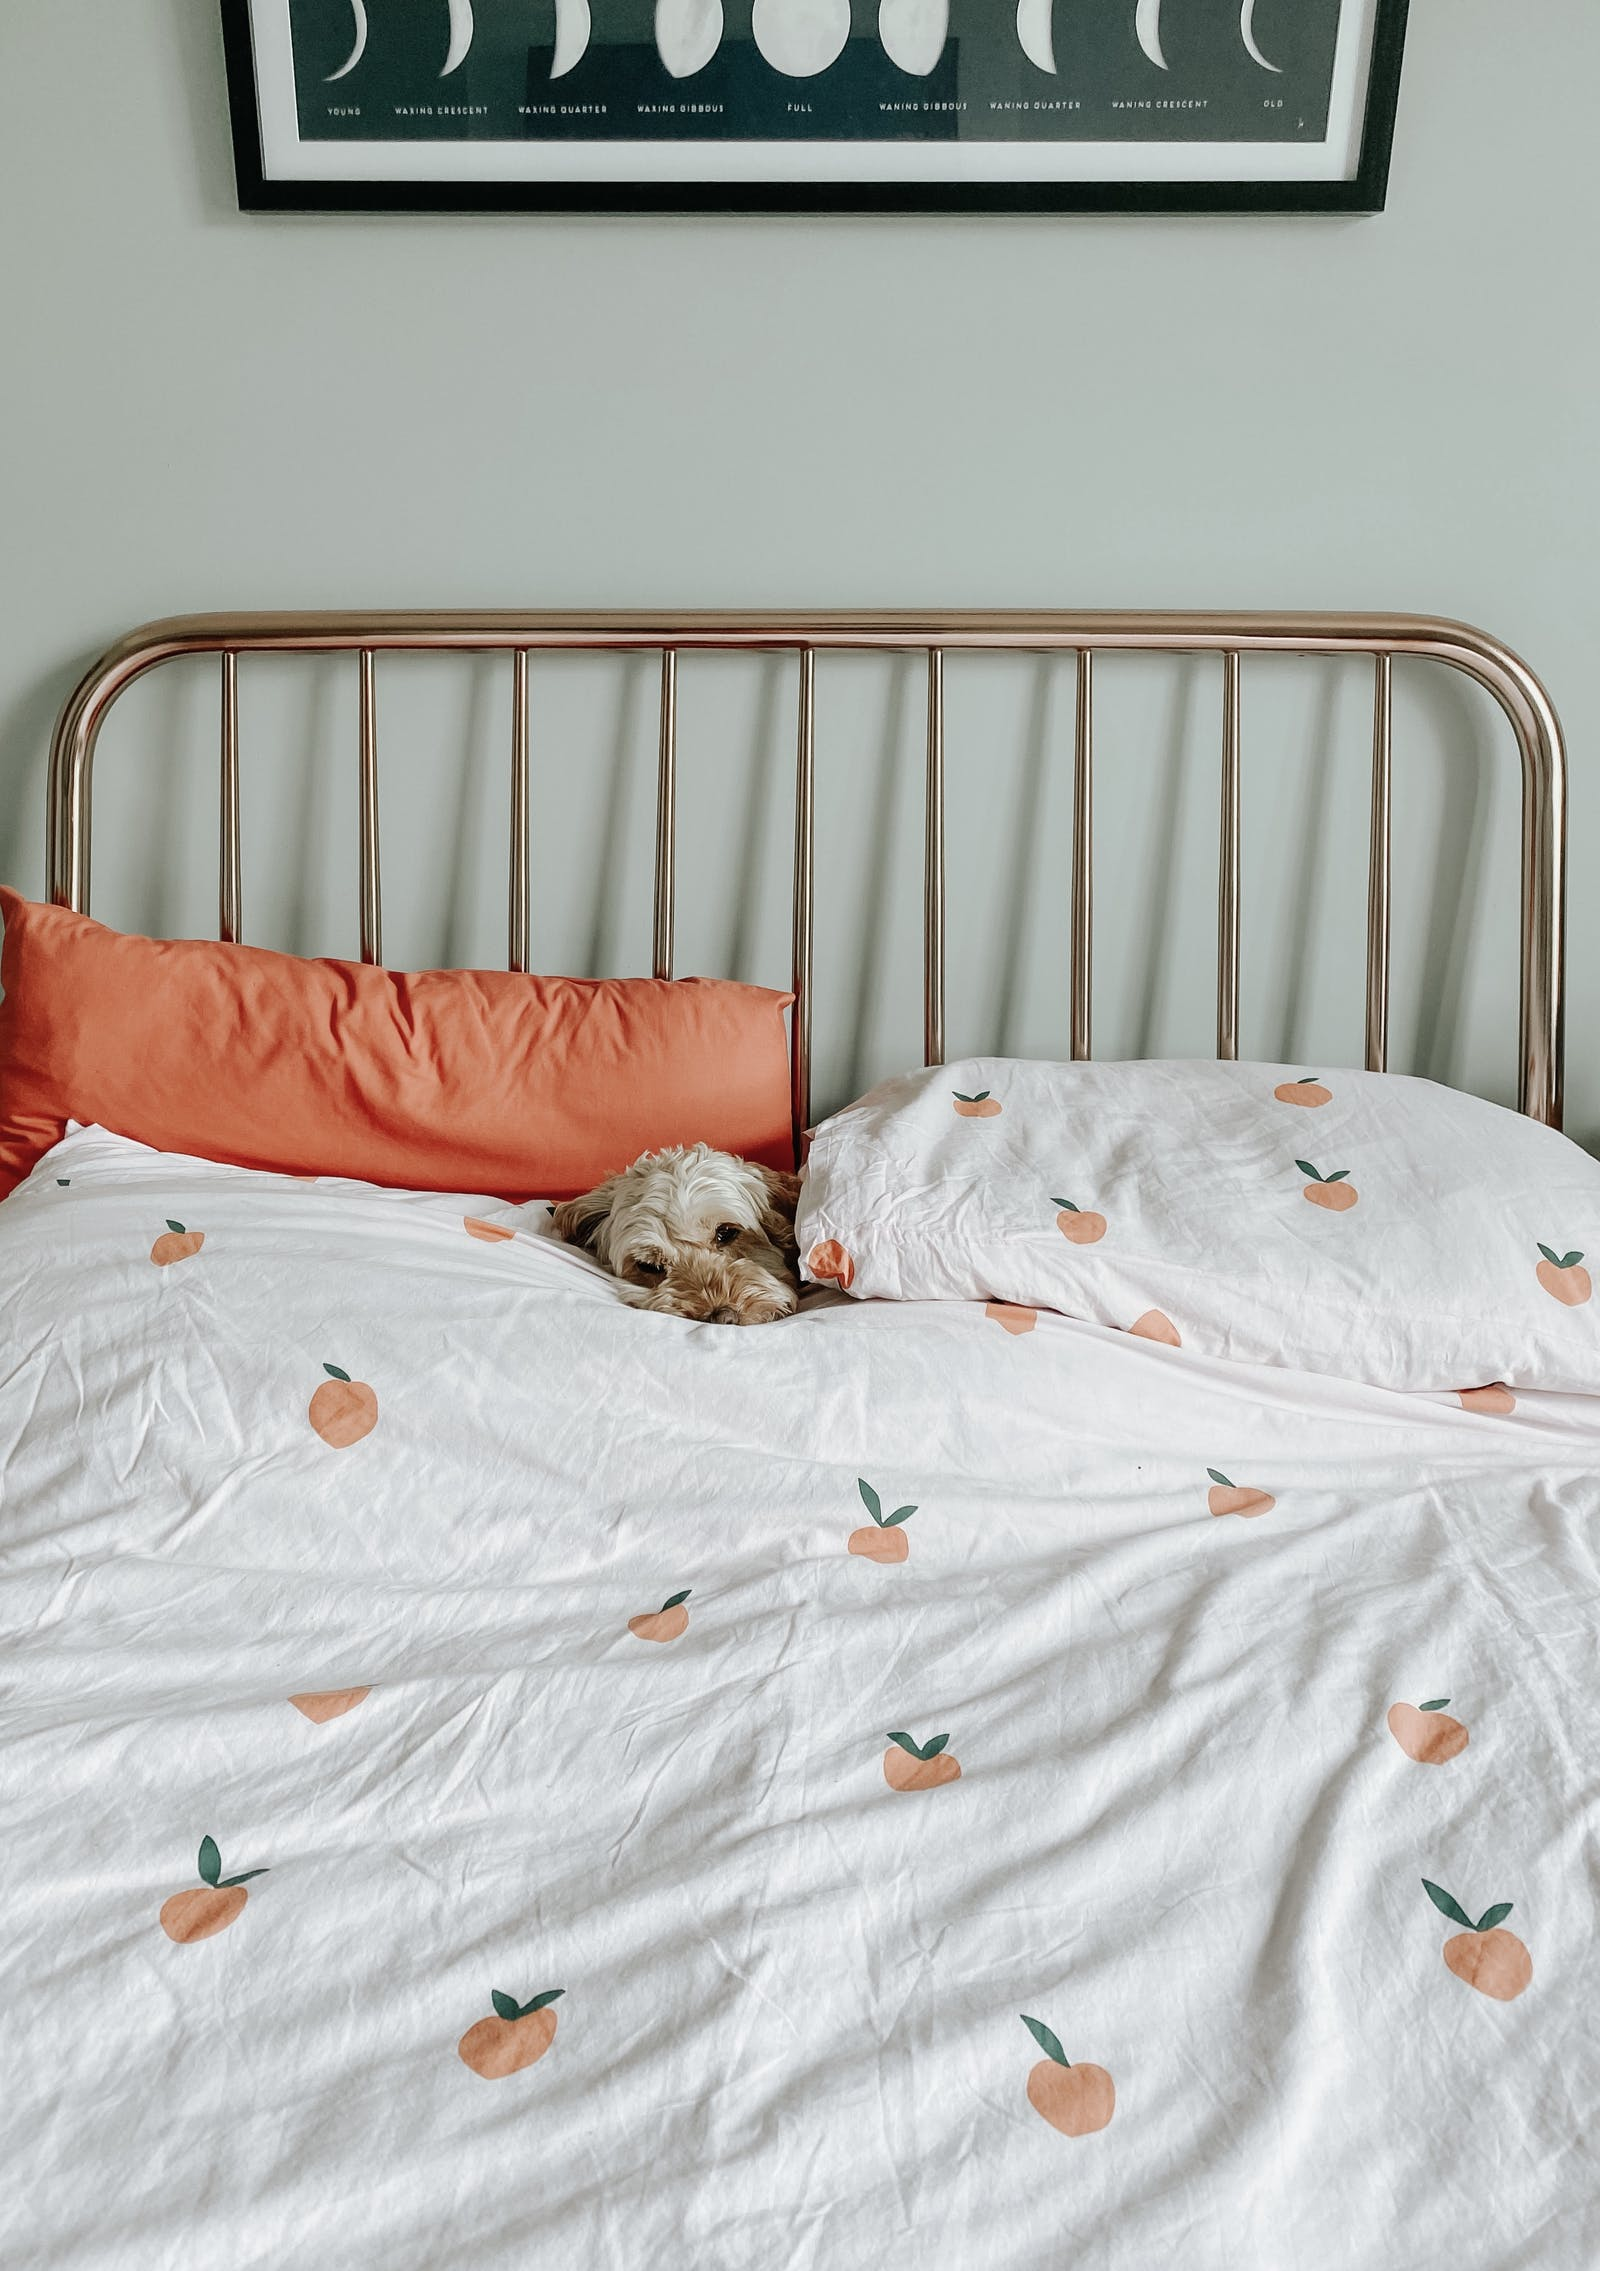 Dog snuggled in bed with orange pattern sheets